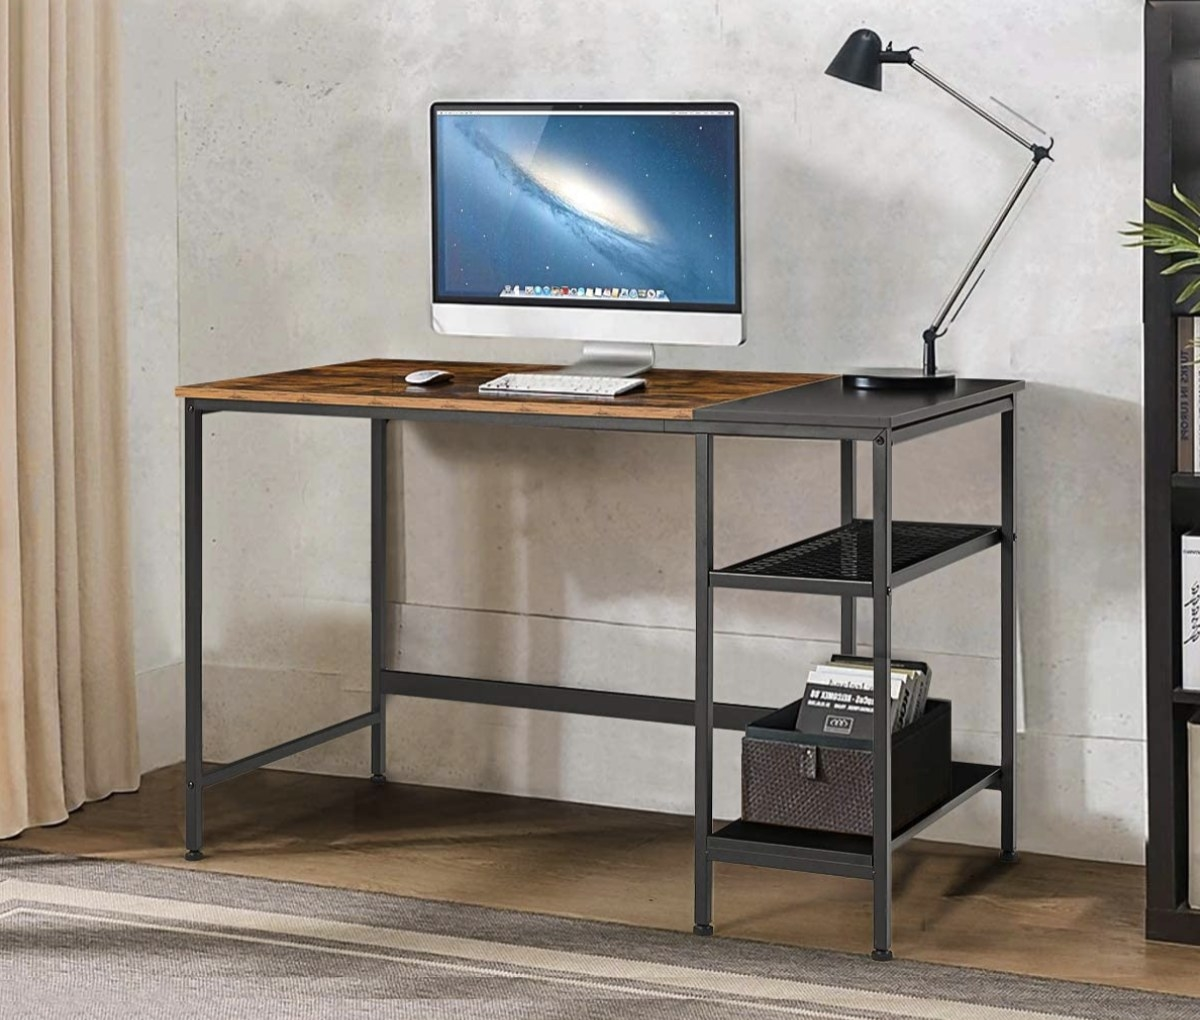 A gray metal and wood desk with open shelves on the right side